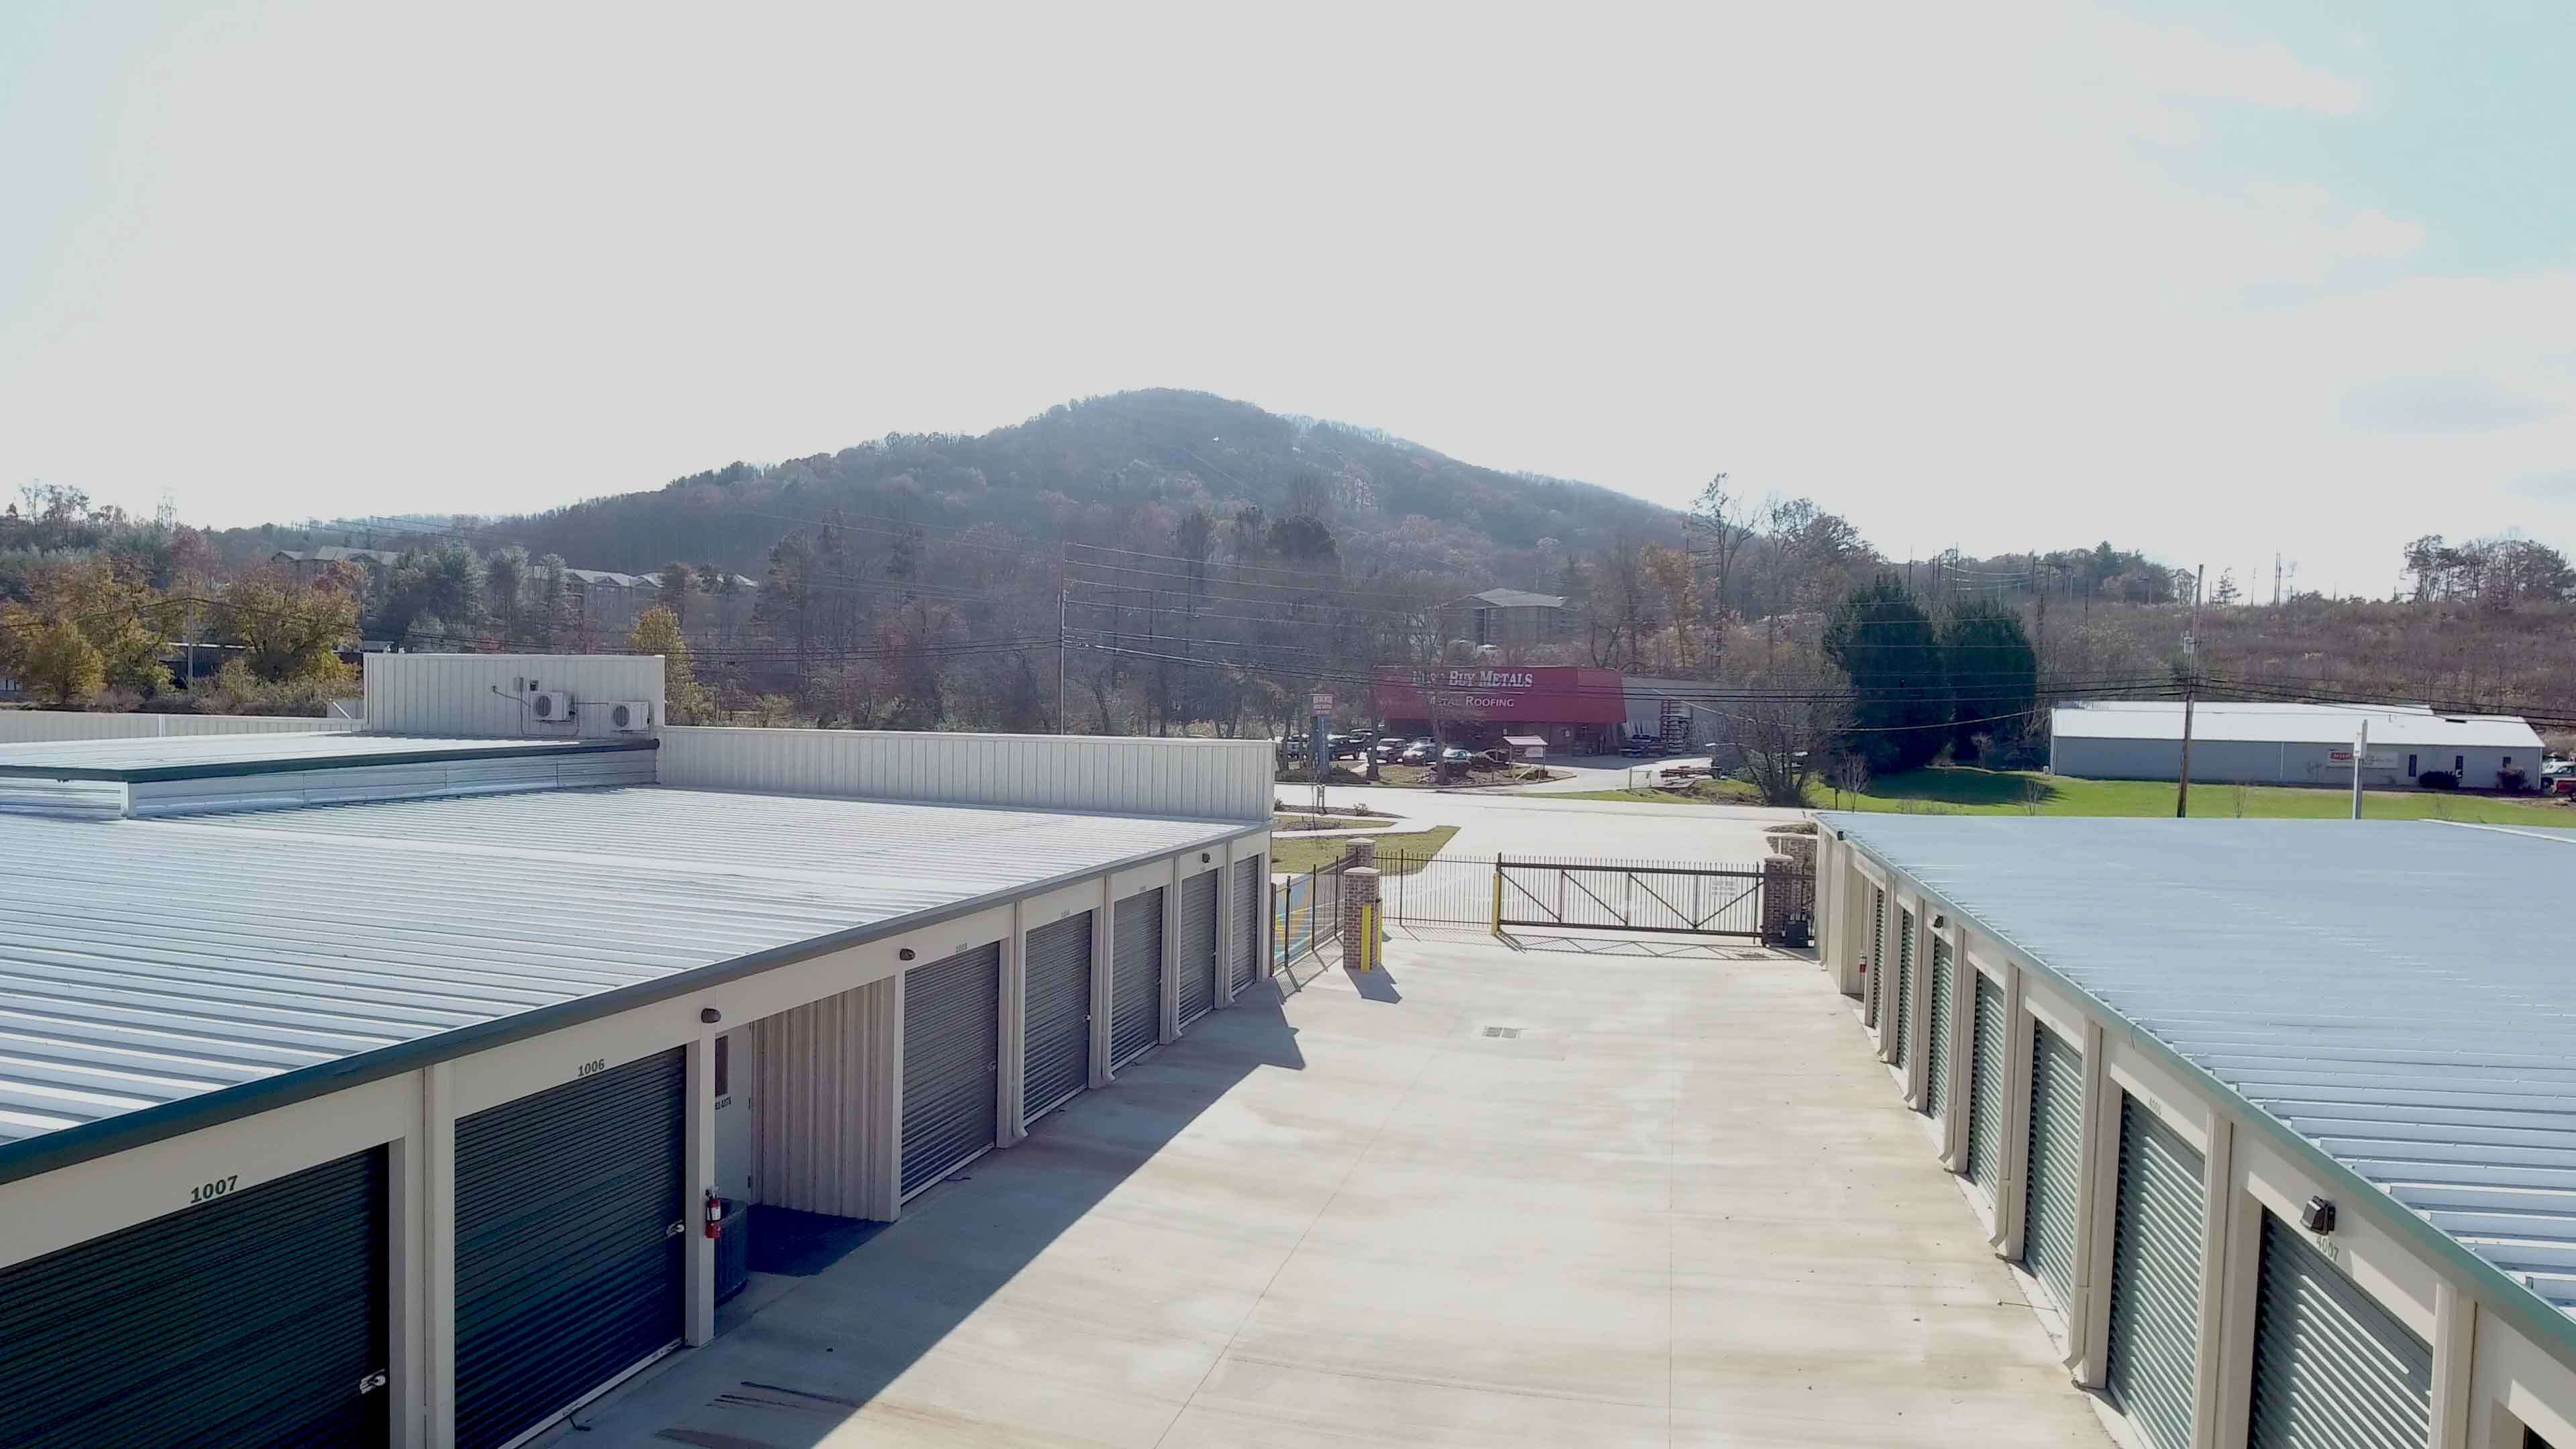 Asheville Storage NC, Gate access driveway and Drive-up storage units, Car Storage, Business Storage, Asheville, North Carolina